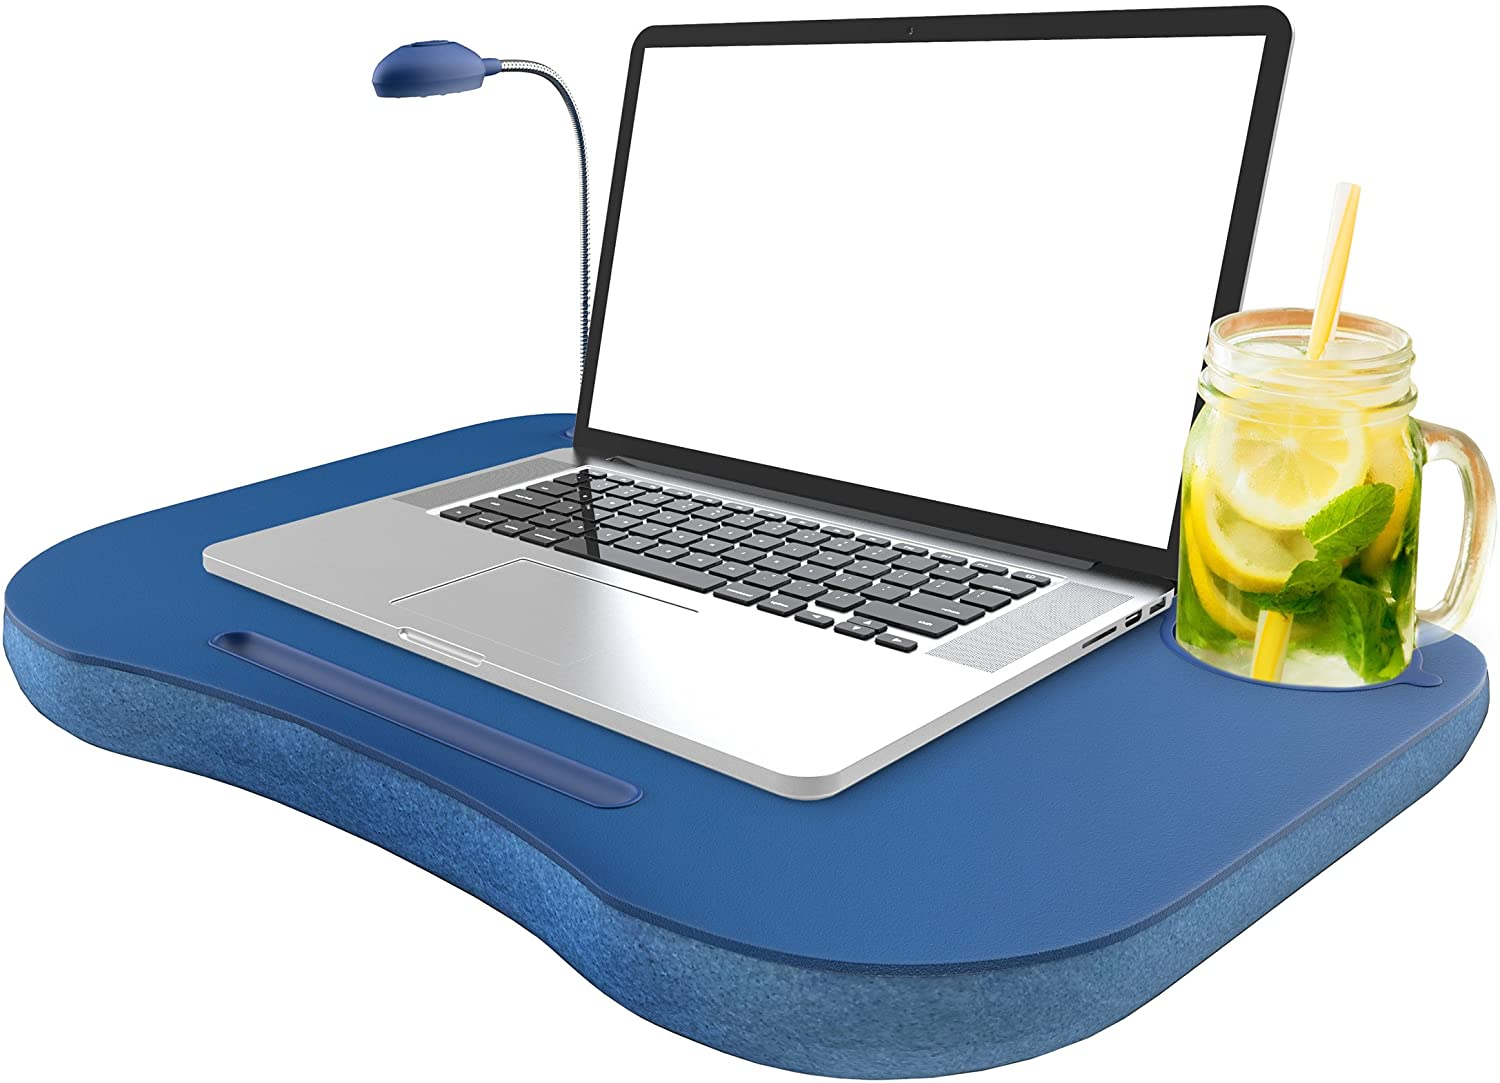 Laptop Lap Desk, Portable with Foam Filled Fleece Cushion, LED Desk Light, Cup Holder-for Homework, Drawing, Reading and More by Lavish Home (Blue): Computers & Accessories